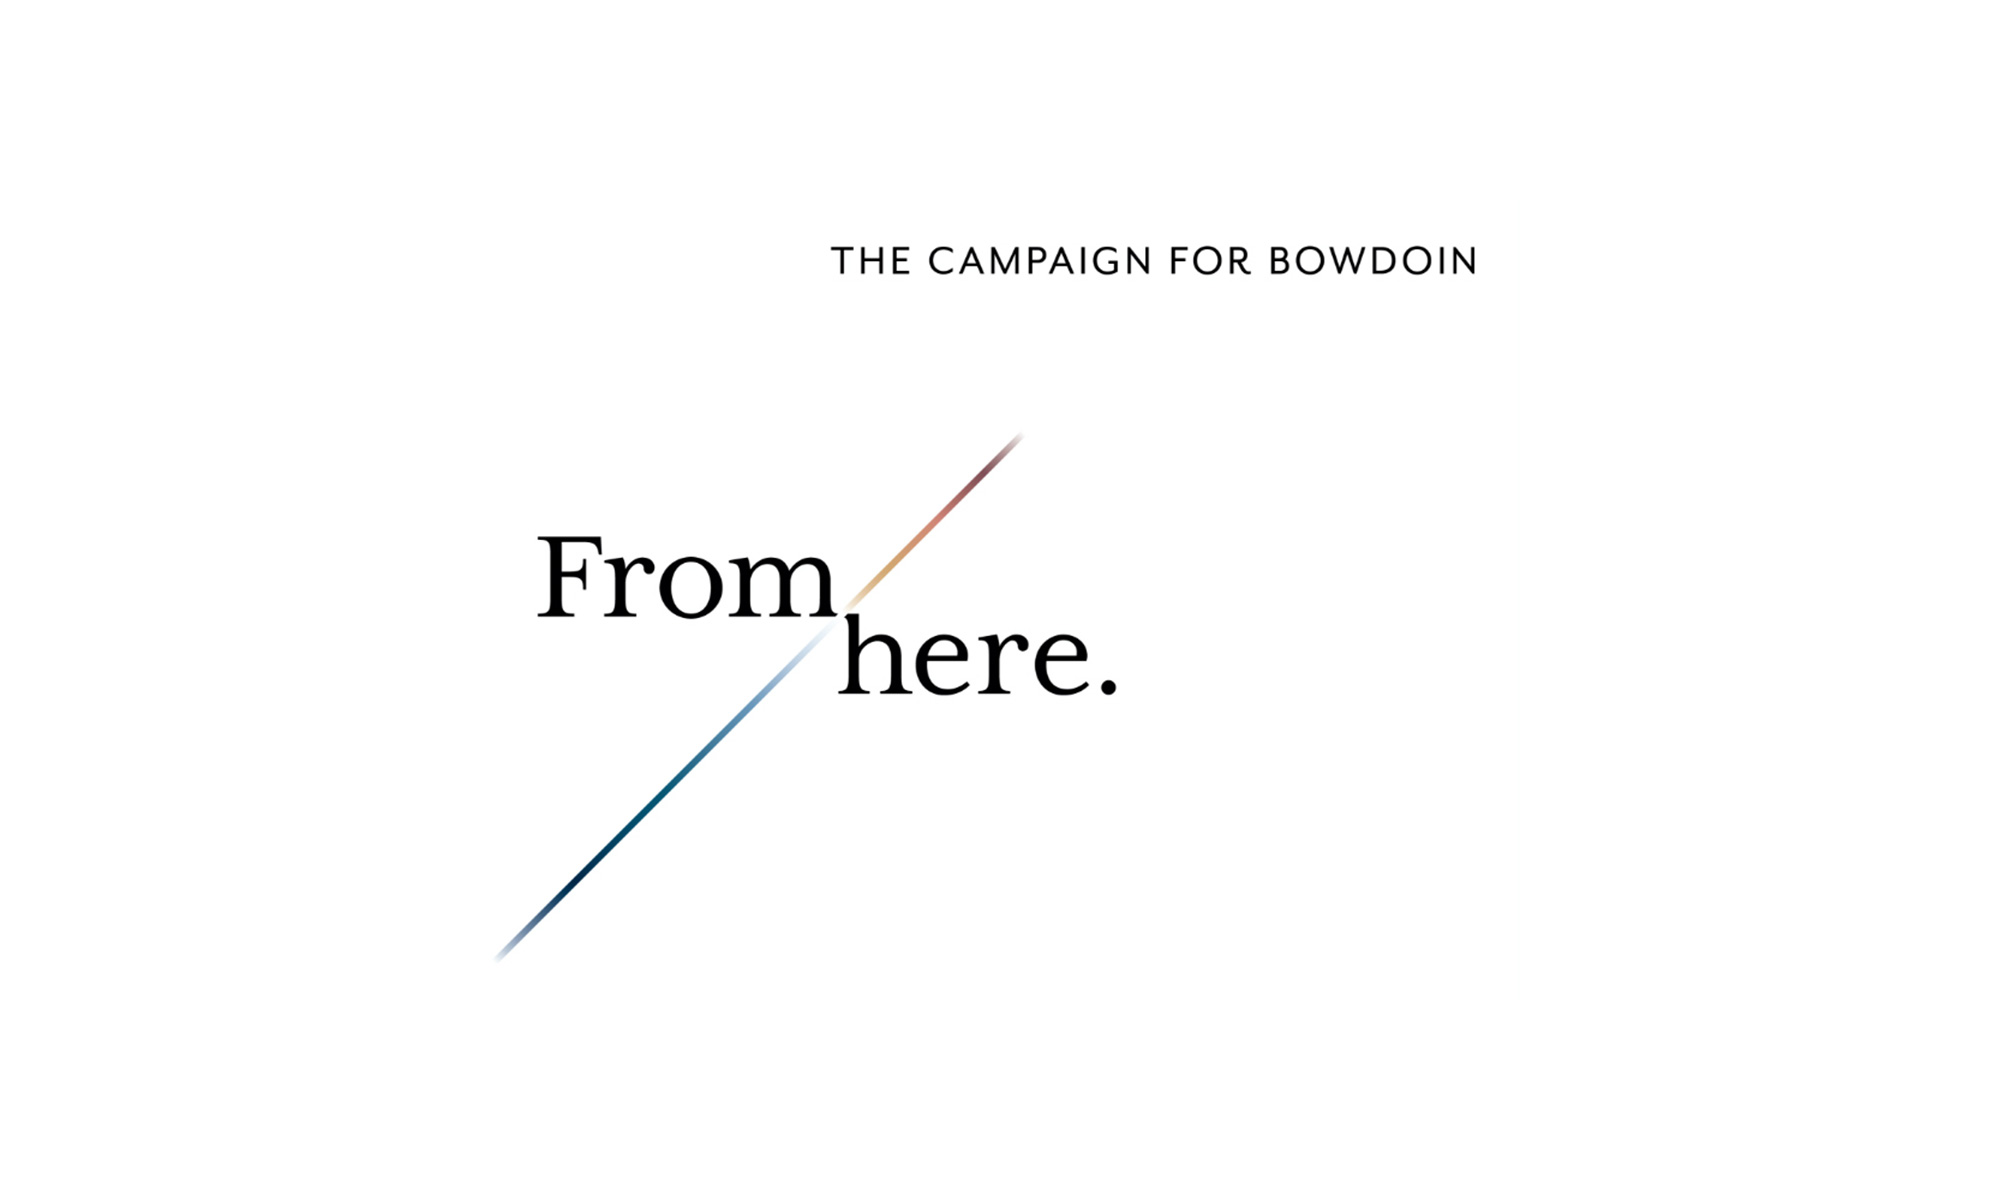 The campaign for Bowdoin. From here.